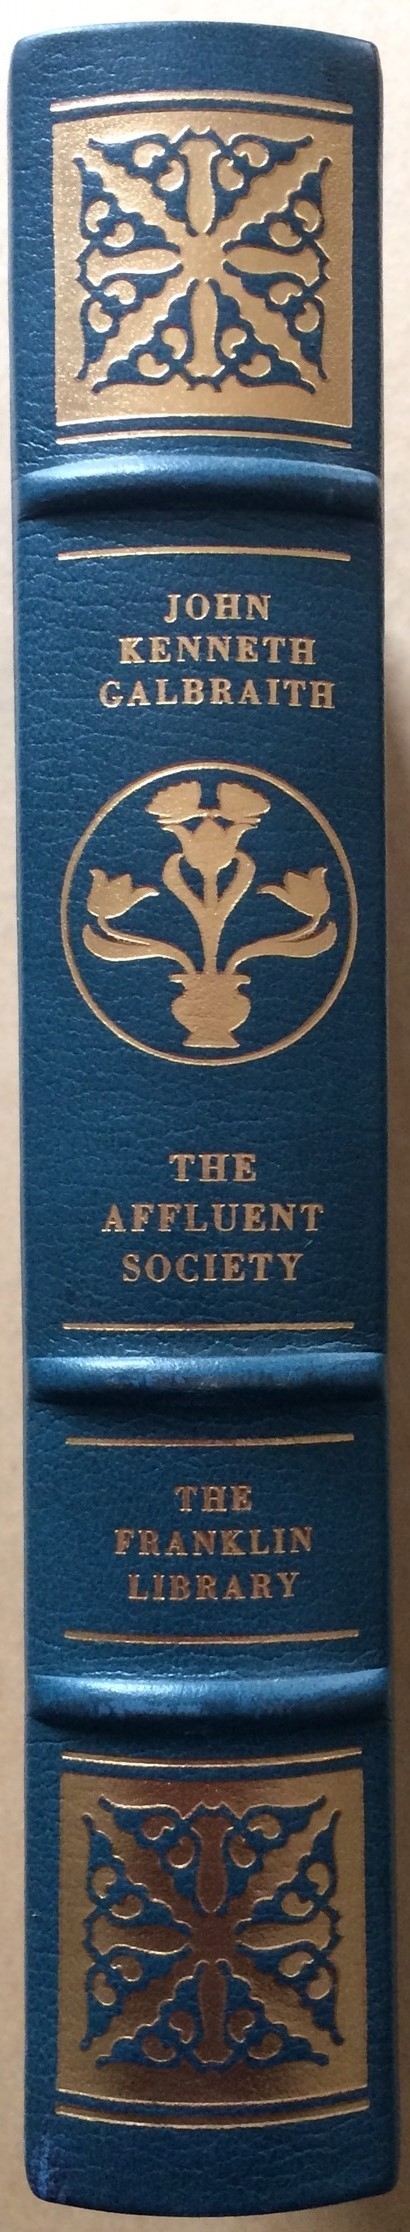 Image for The Affluent Society